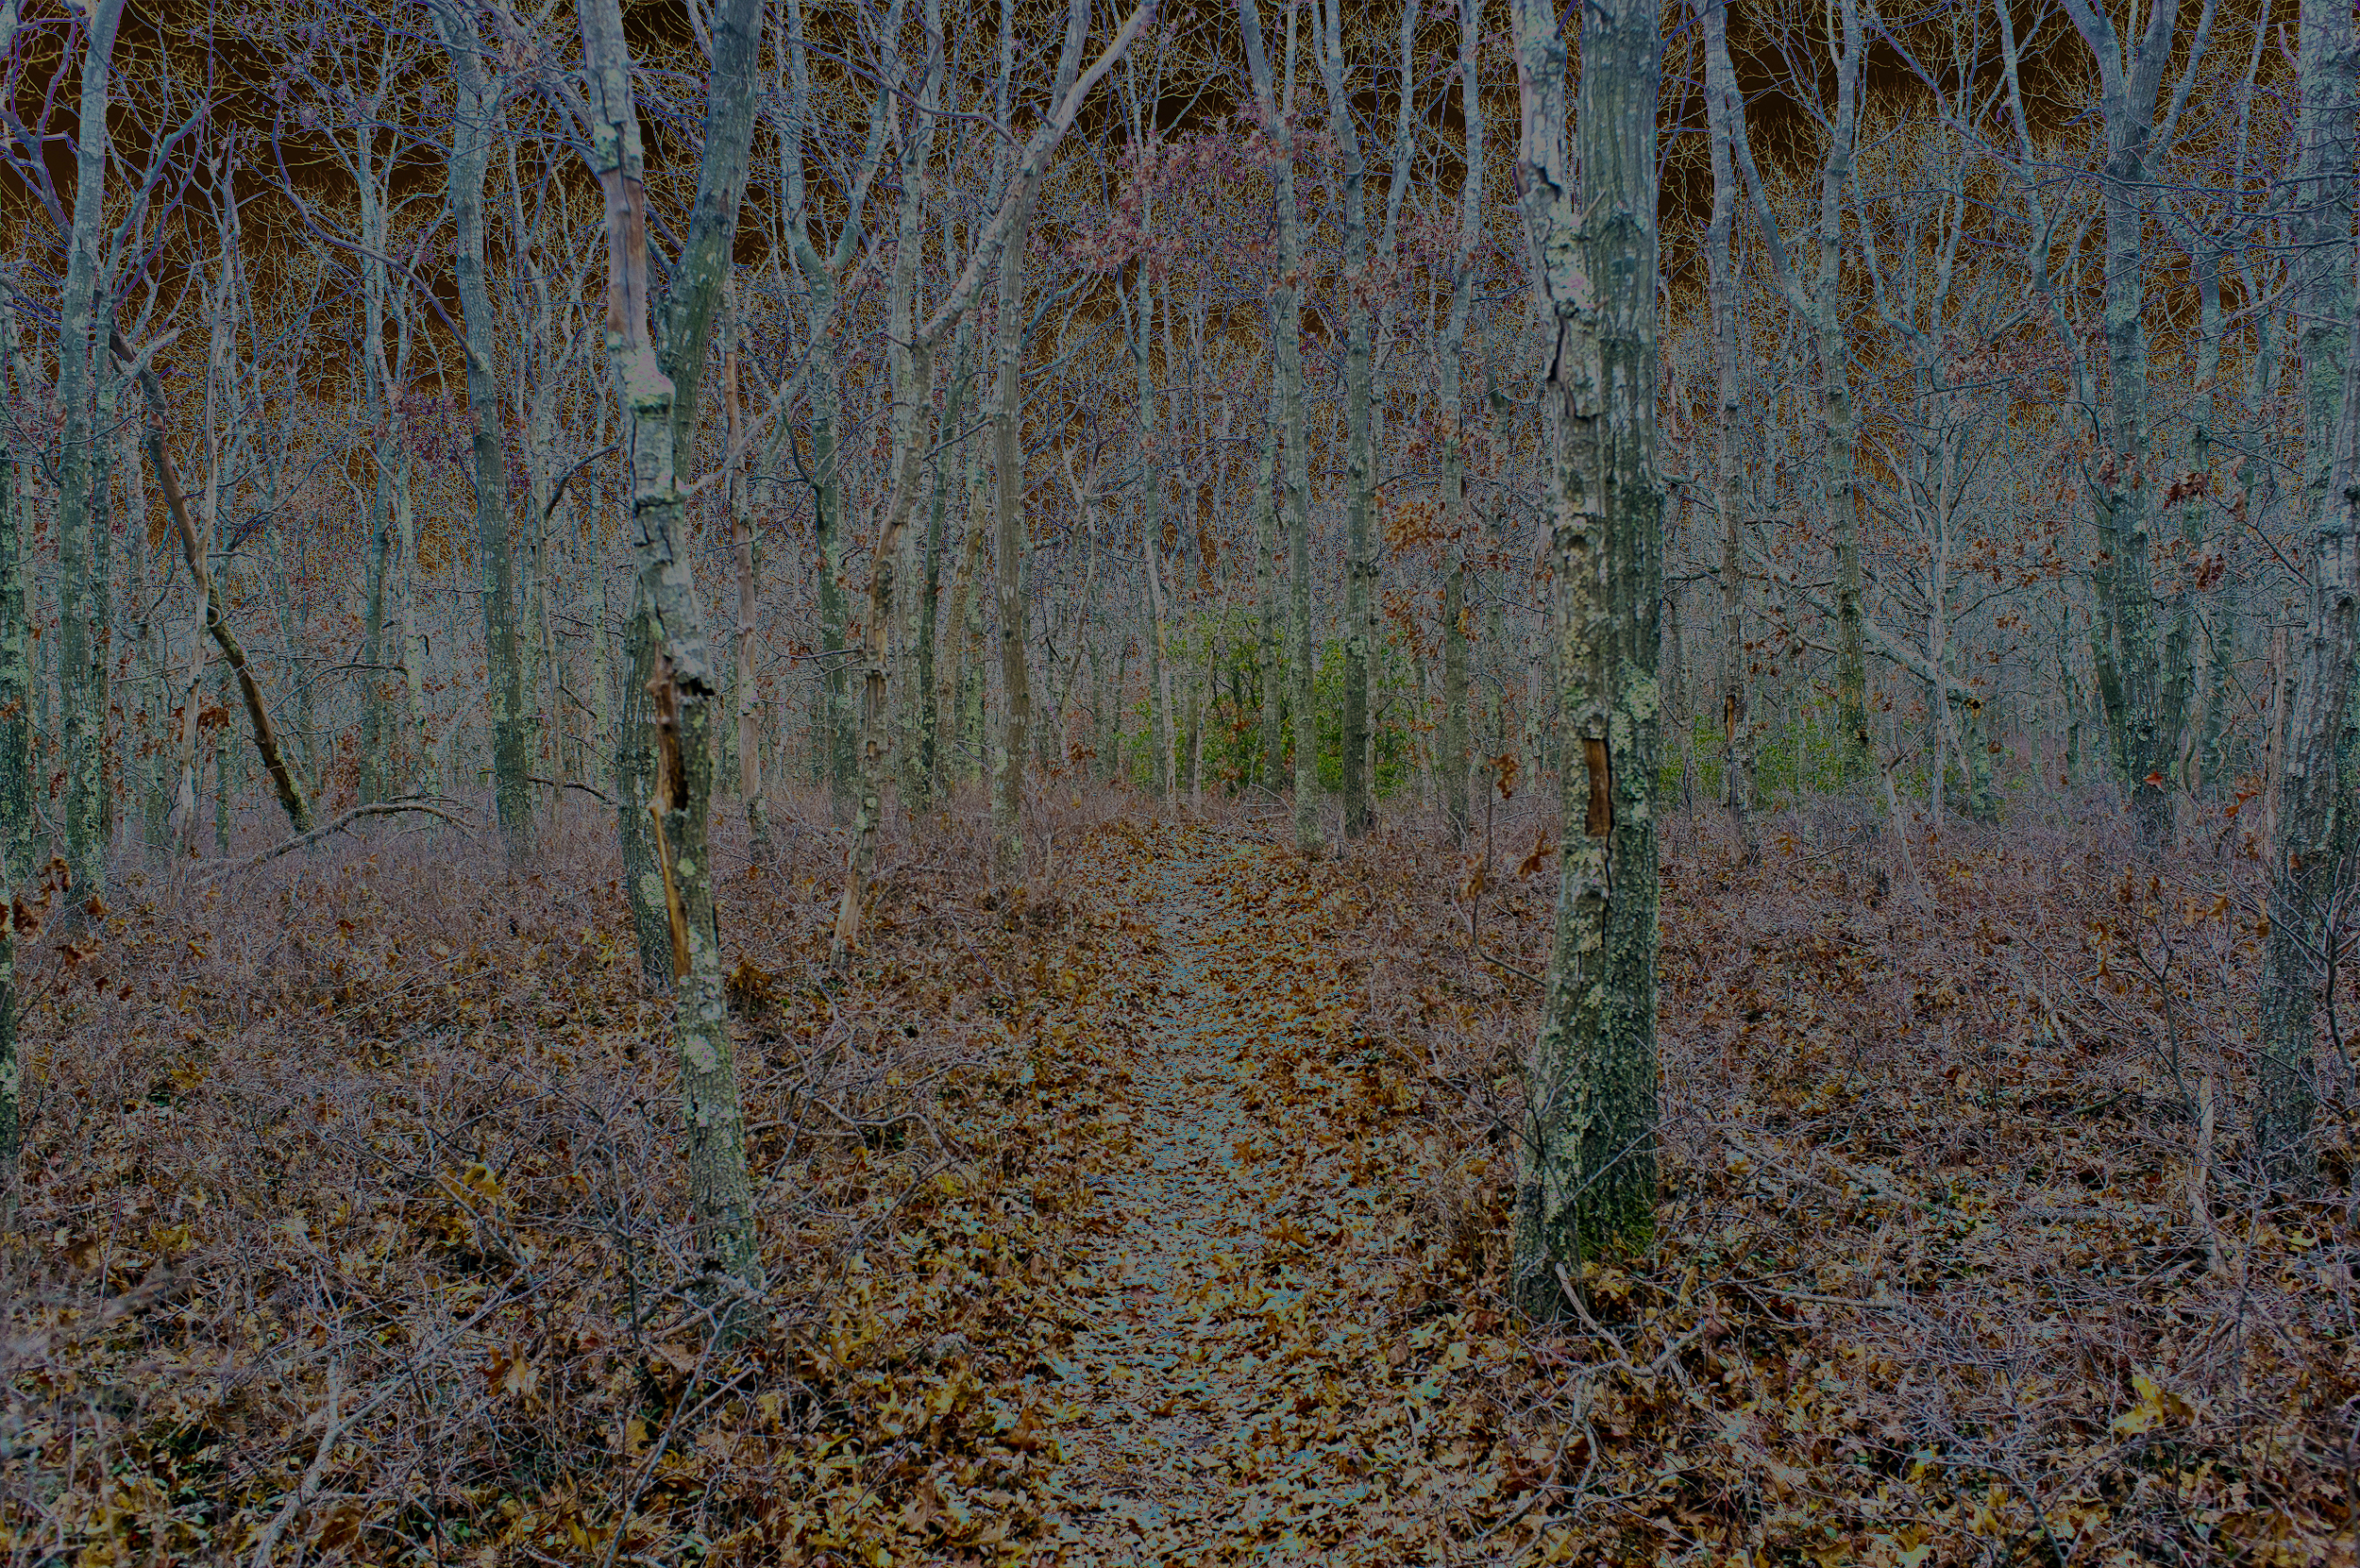 Sagg Trail One, 2018, photo on aluminum, 65 x 43.3 in, edition of 5 (3 available), $5,000